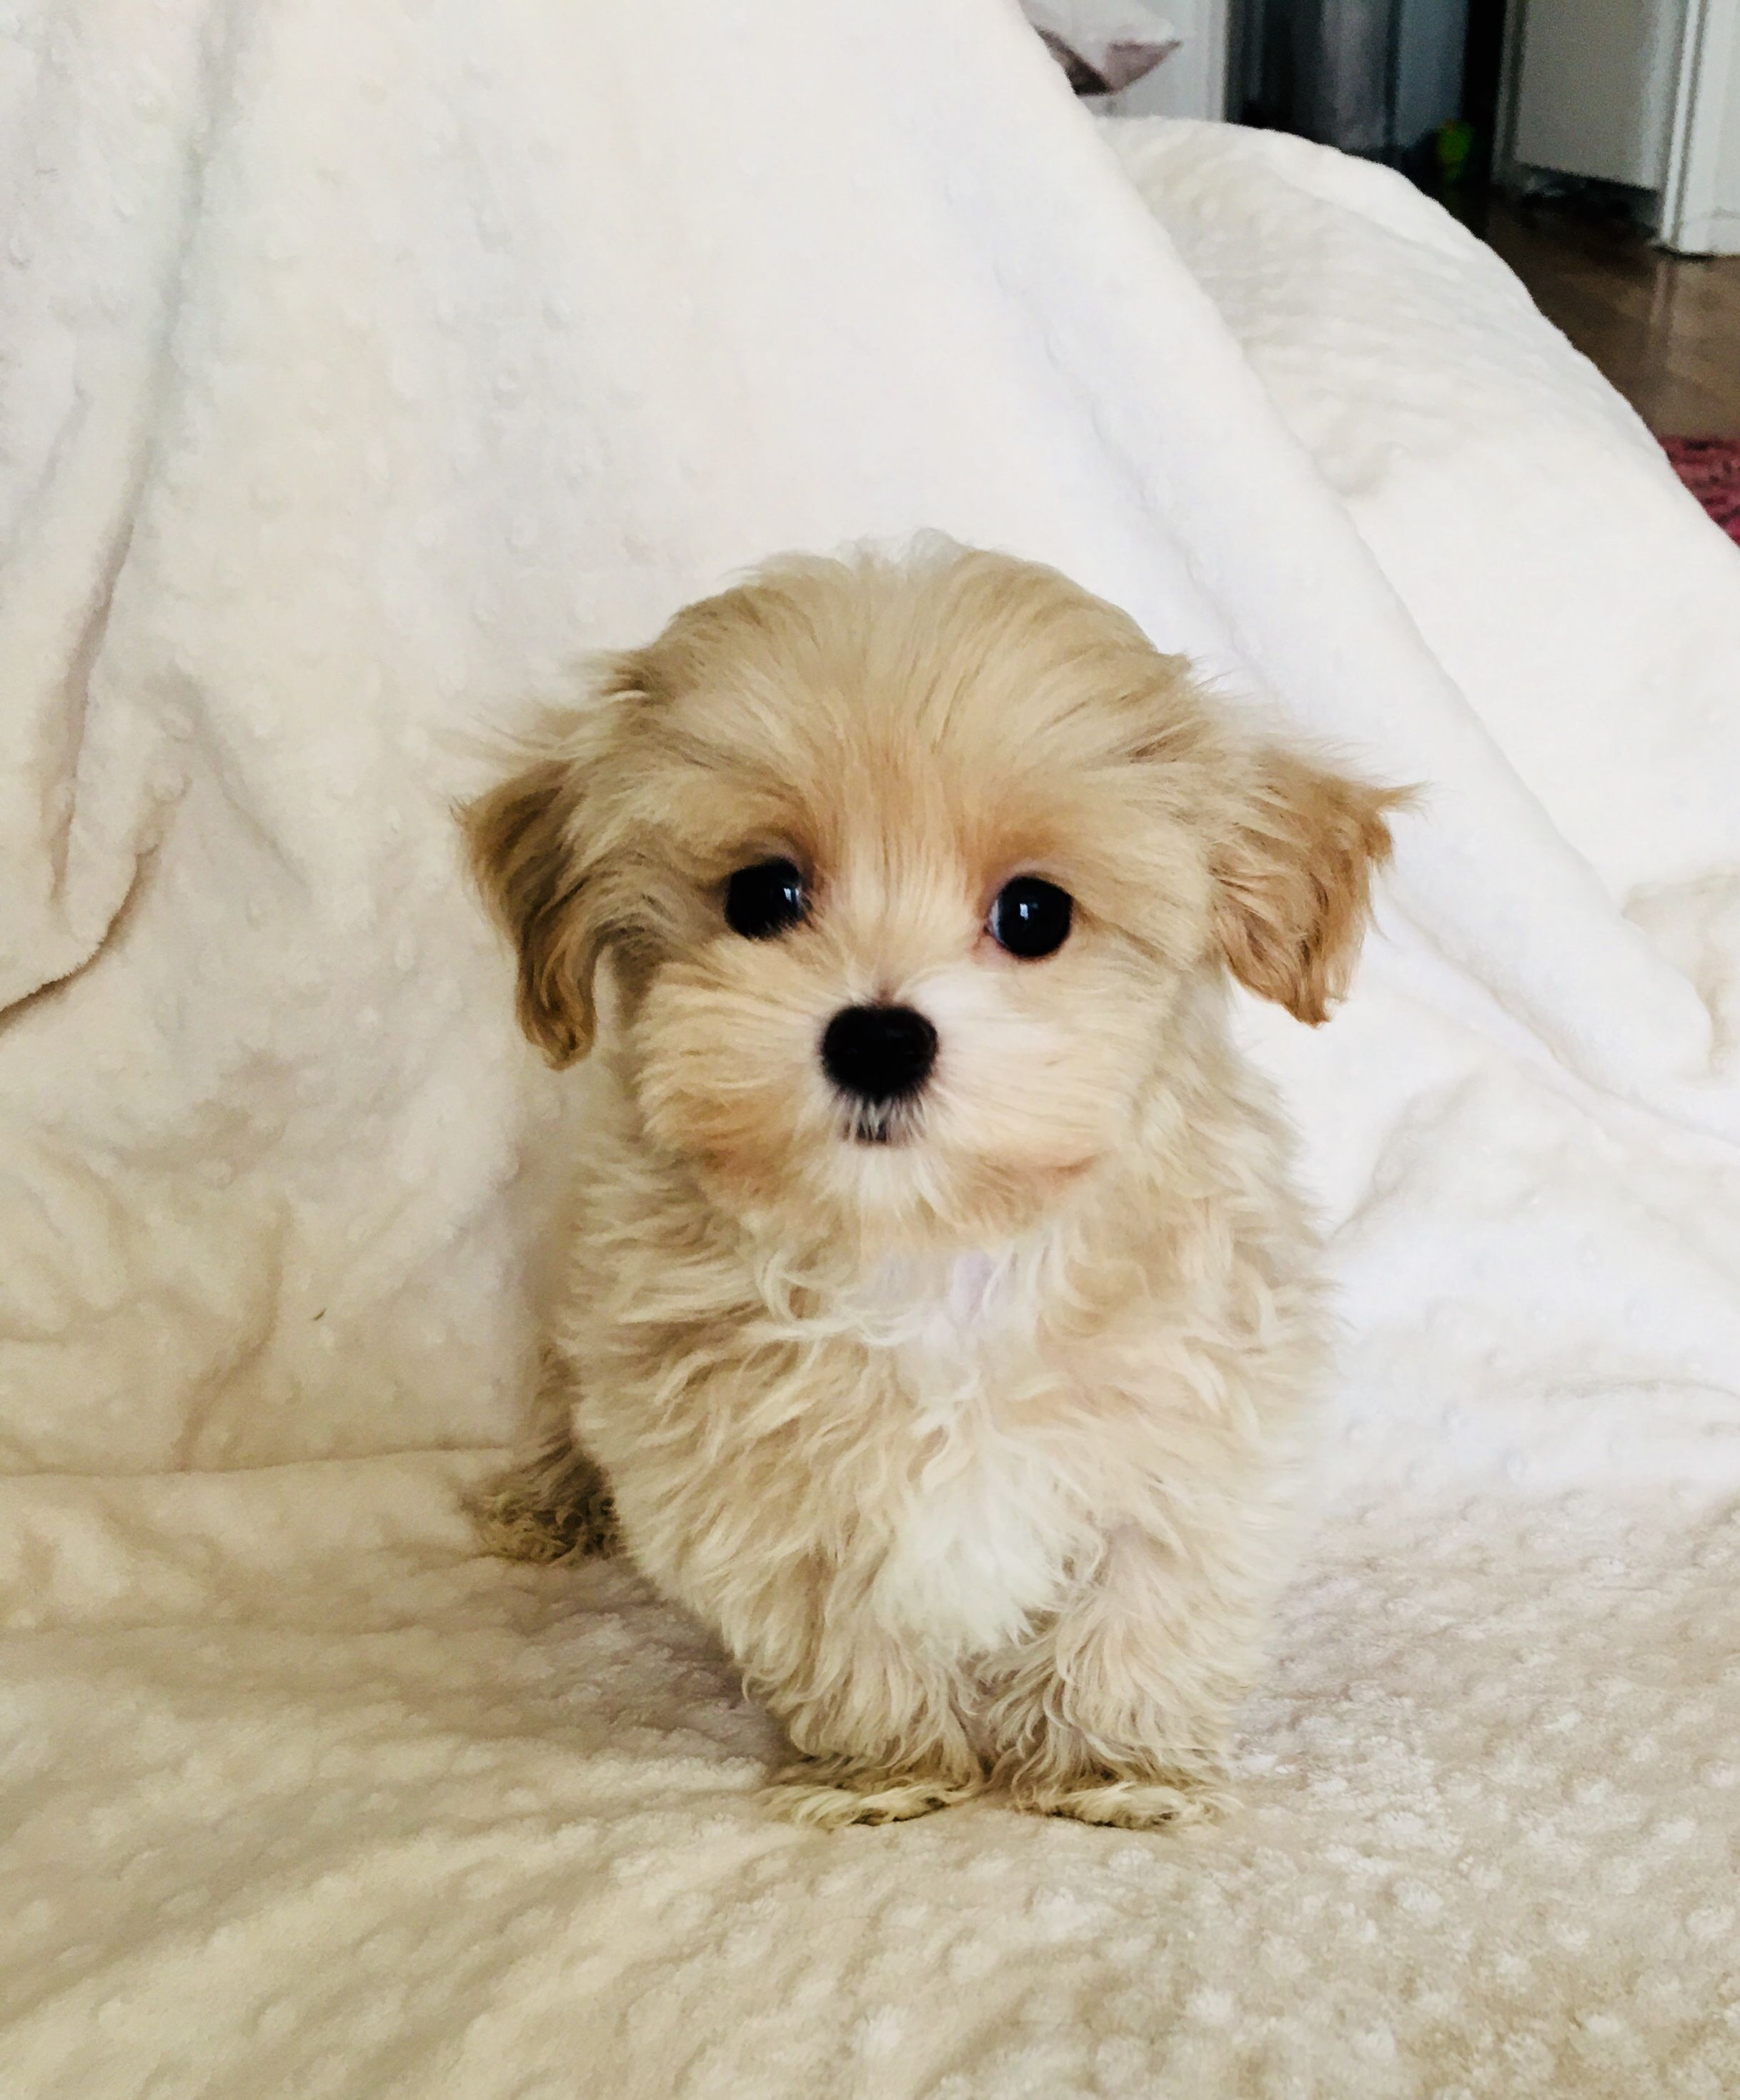 Iheartteacups We Have Beautiful And Tiny Teacup And Micro Mini Sized Tea Puppies For Sale In California We Speciali Morkie Puppies Puppies Shorkie Puppies